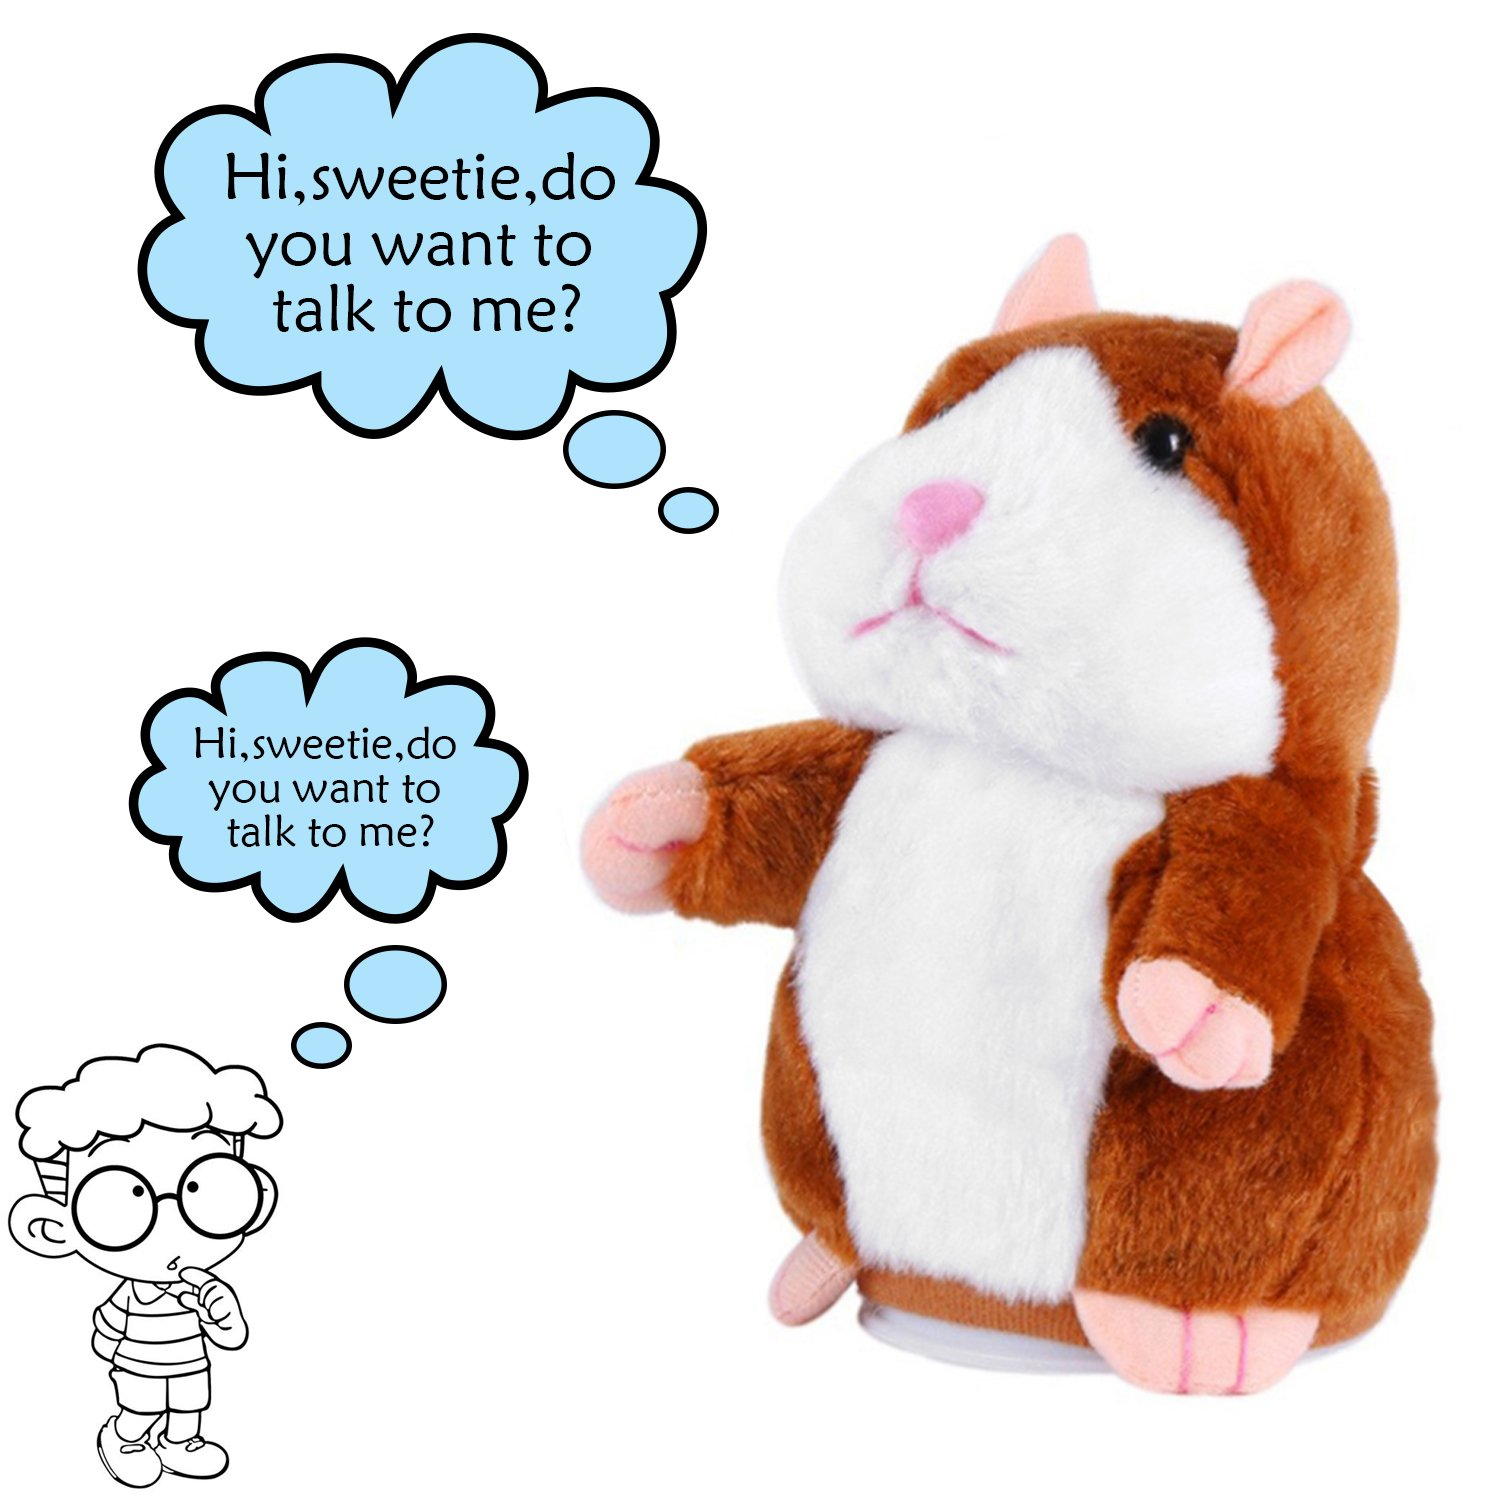 Mimicry Talking Hamster Toys For Kids Toddler Adults Lovers, Electronic Stuff Pet Mouse Funny Plush Interactive Toy Speak It Out Game Voice Record Toy Best Gift For Valentines Day, Birthday, Xmas(Grey) Katedy kya1802